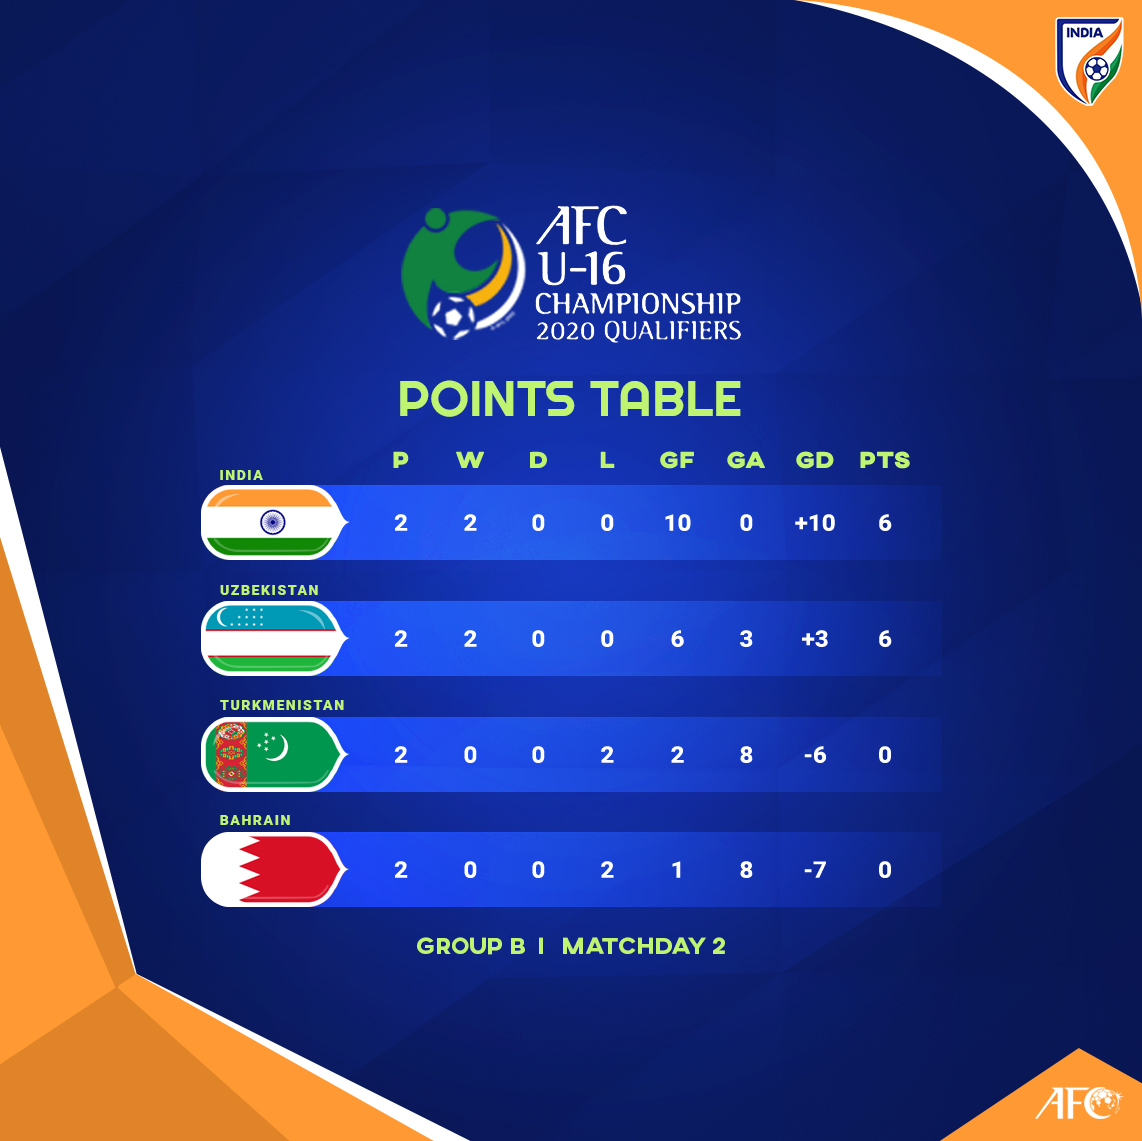 India U16 marched on to their second win in as many games in the 2020 AFC U-16 Championship Qualifiers, after drubbing Bahrain U16 5-0